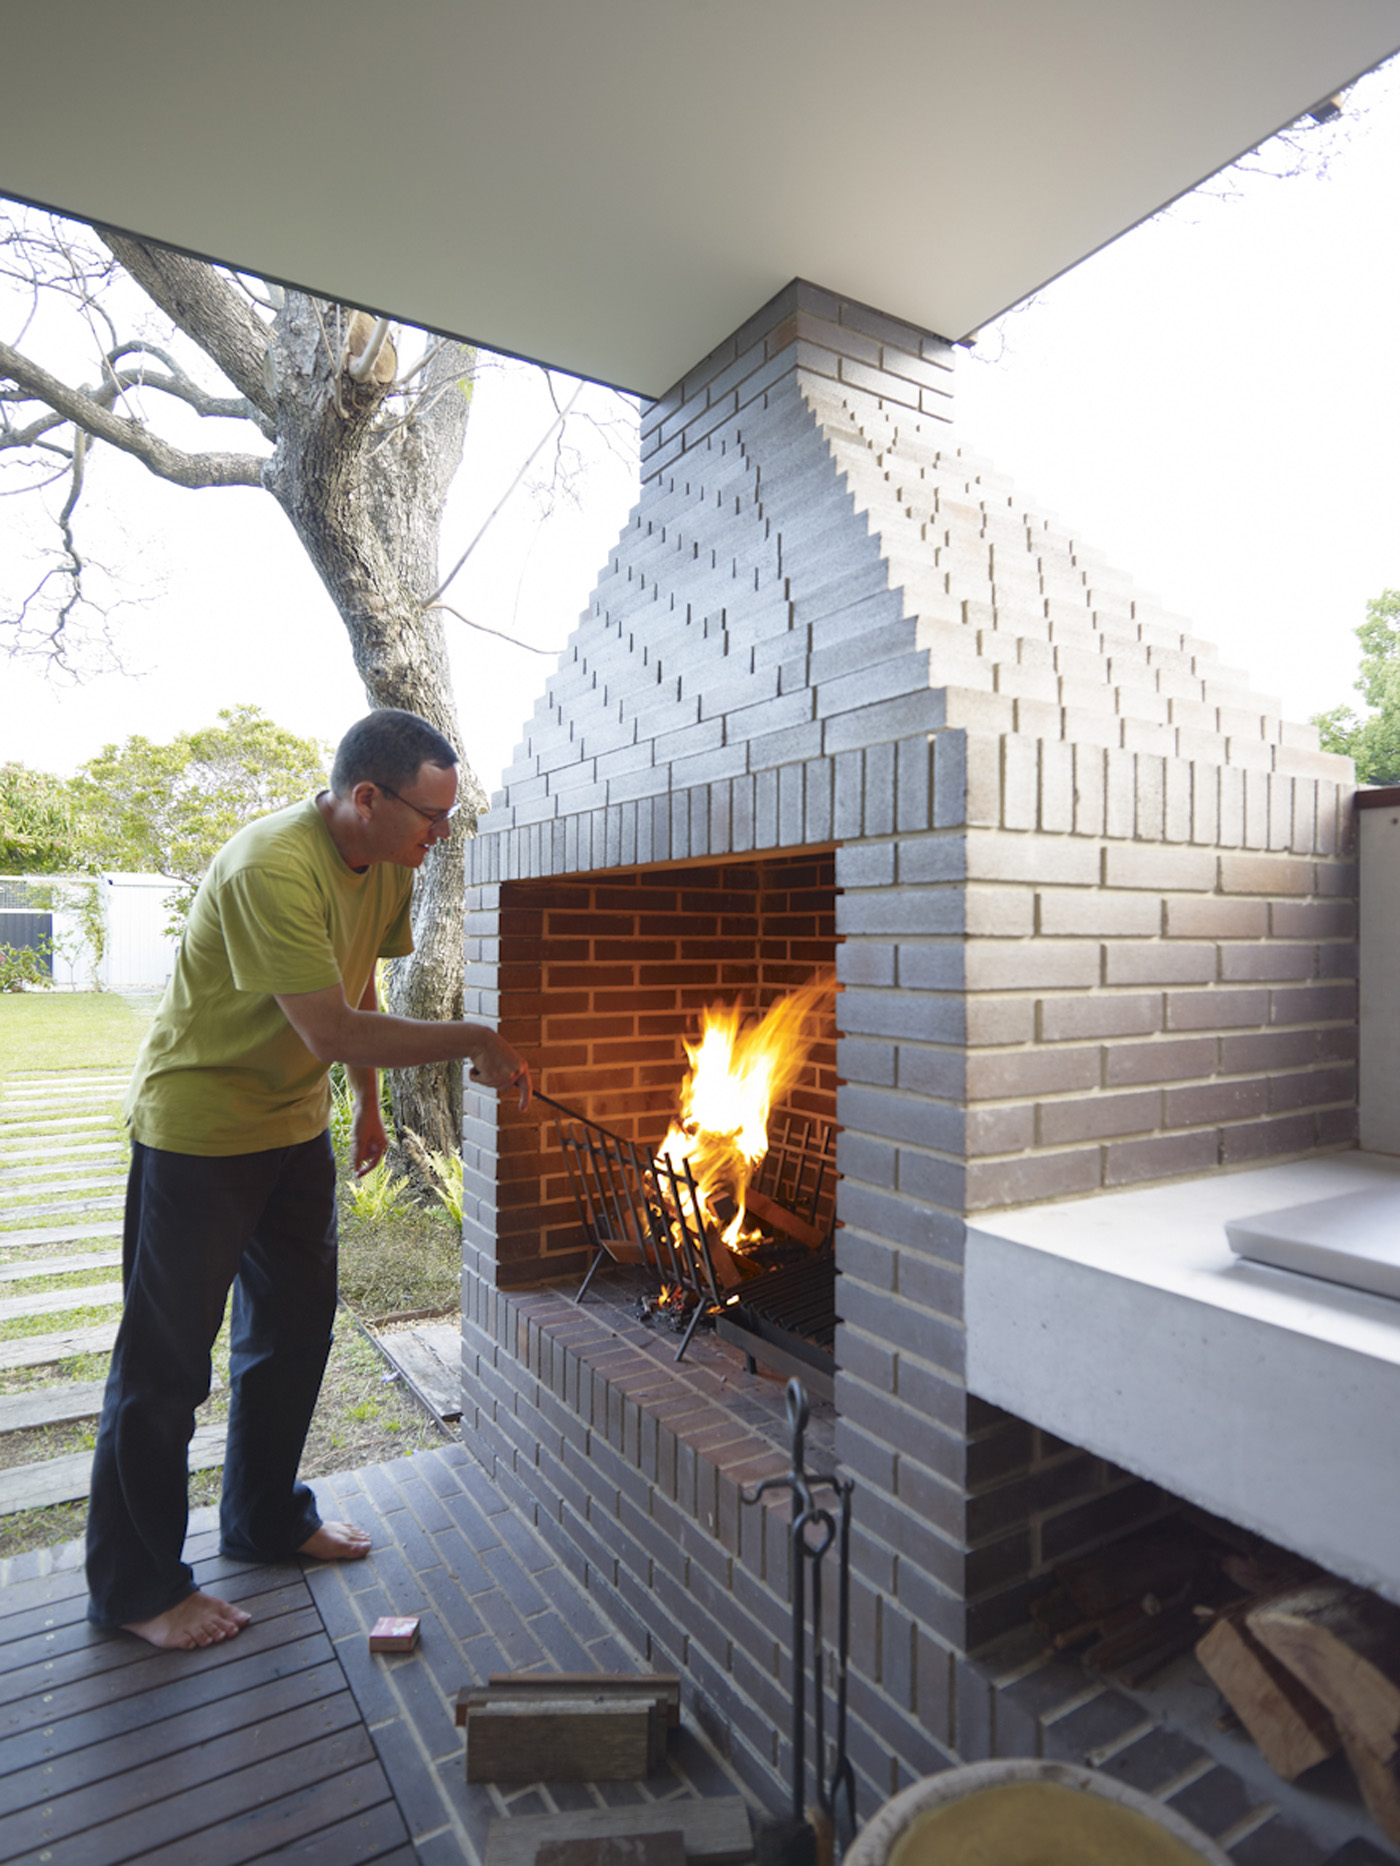 Garrett House by Sydney award winning architecture office Sam Crawford Architects. External barbecue area